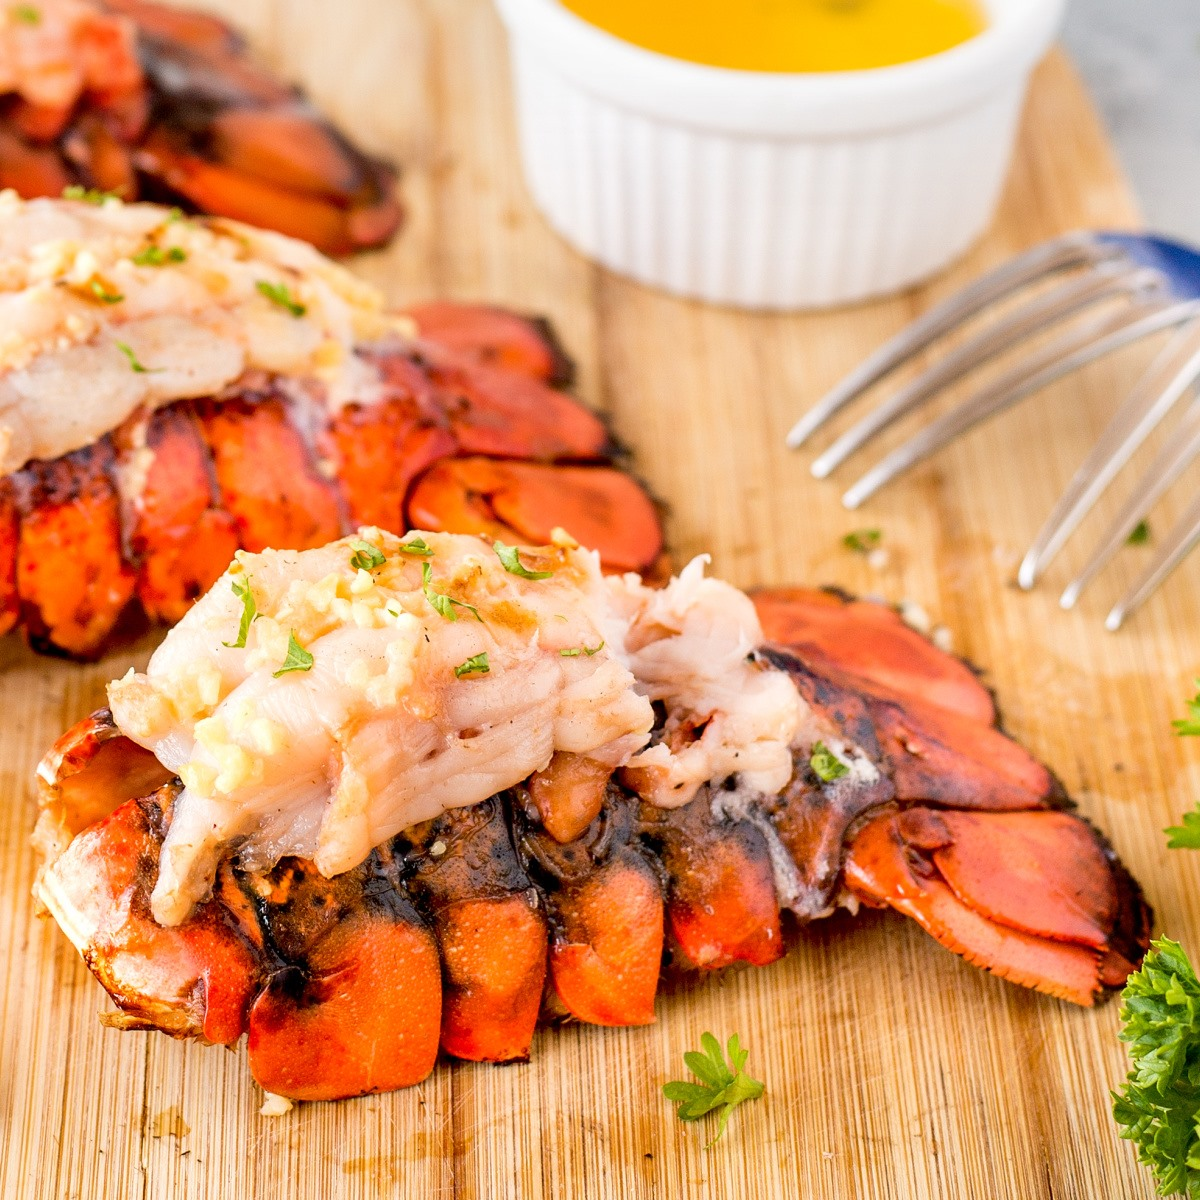 Grilled lobster tail on a wooden cutting board